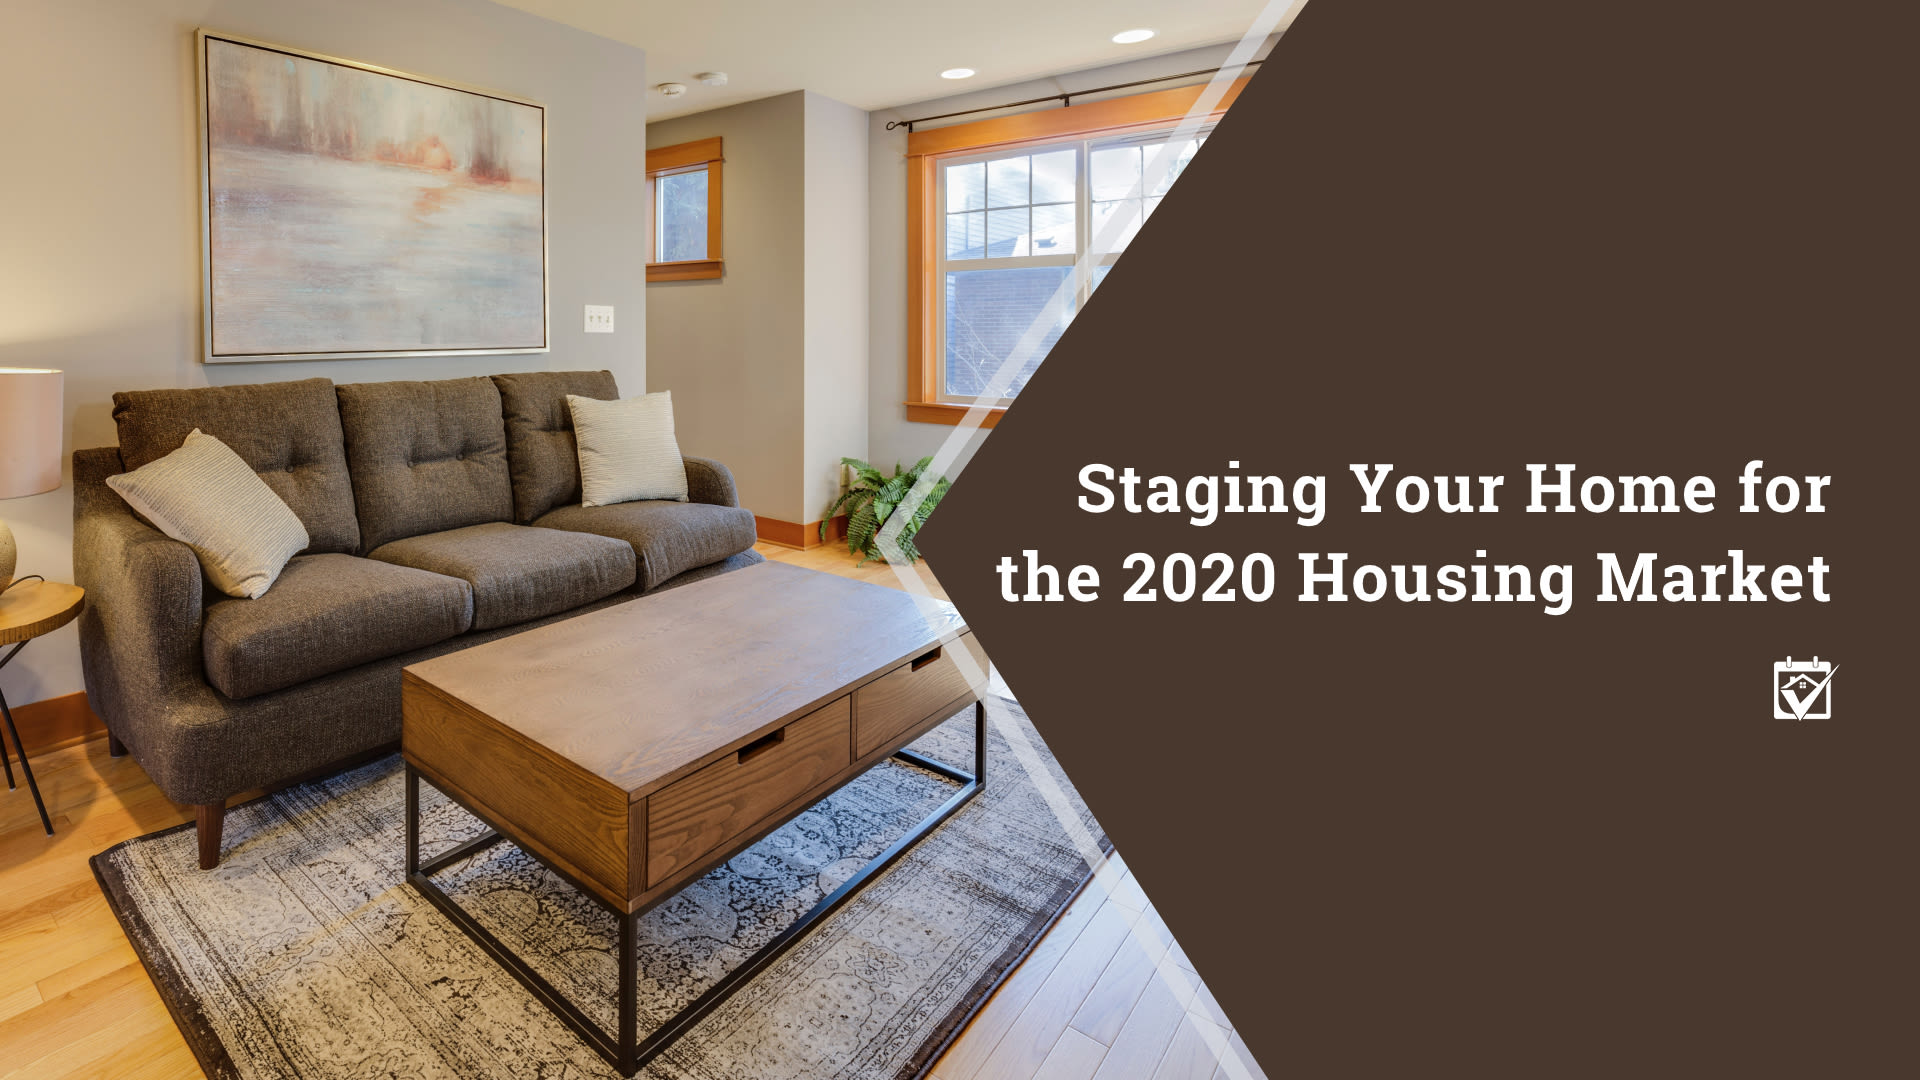 STAGING YOUR HOME FOR THE 2020 MARKET